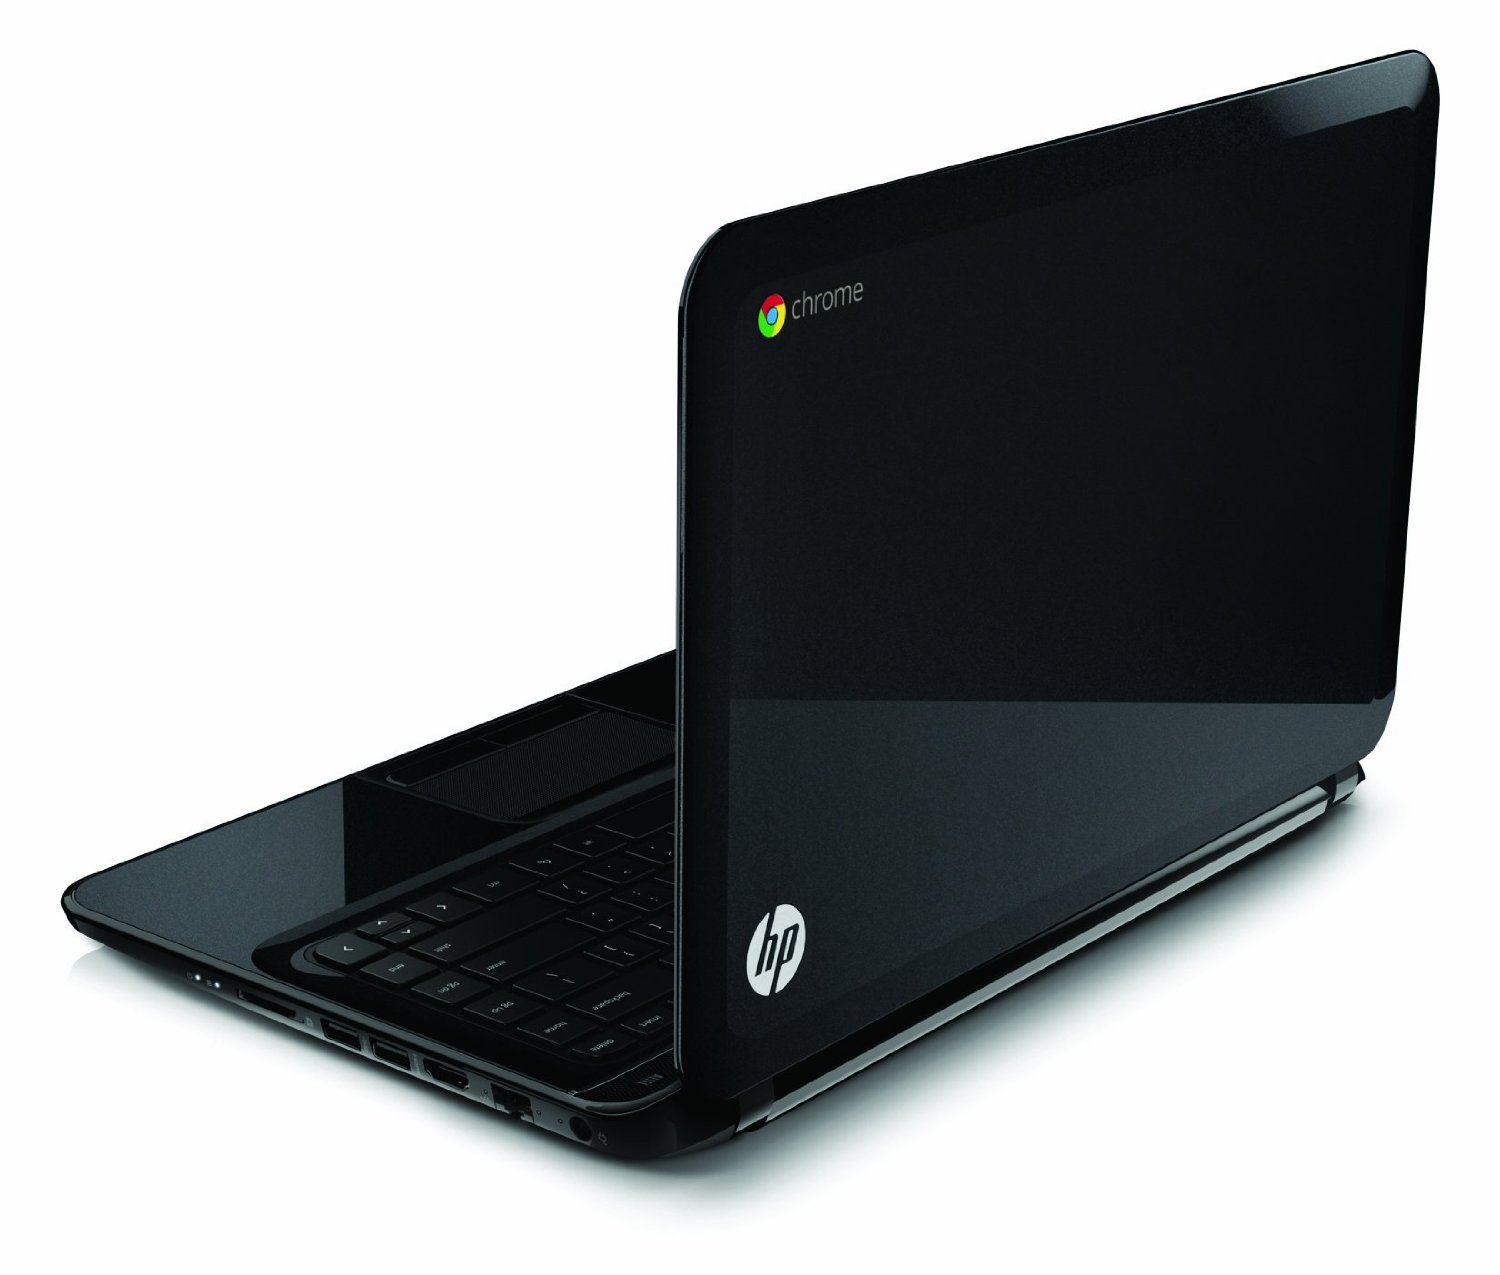 HP Pavilion Chromebook 14-c050nr